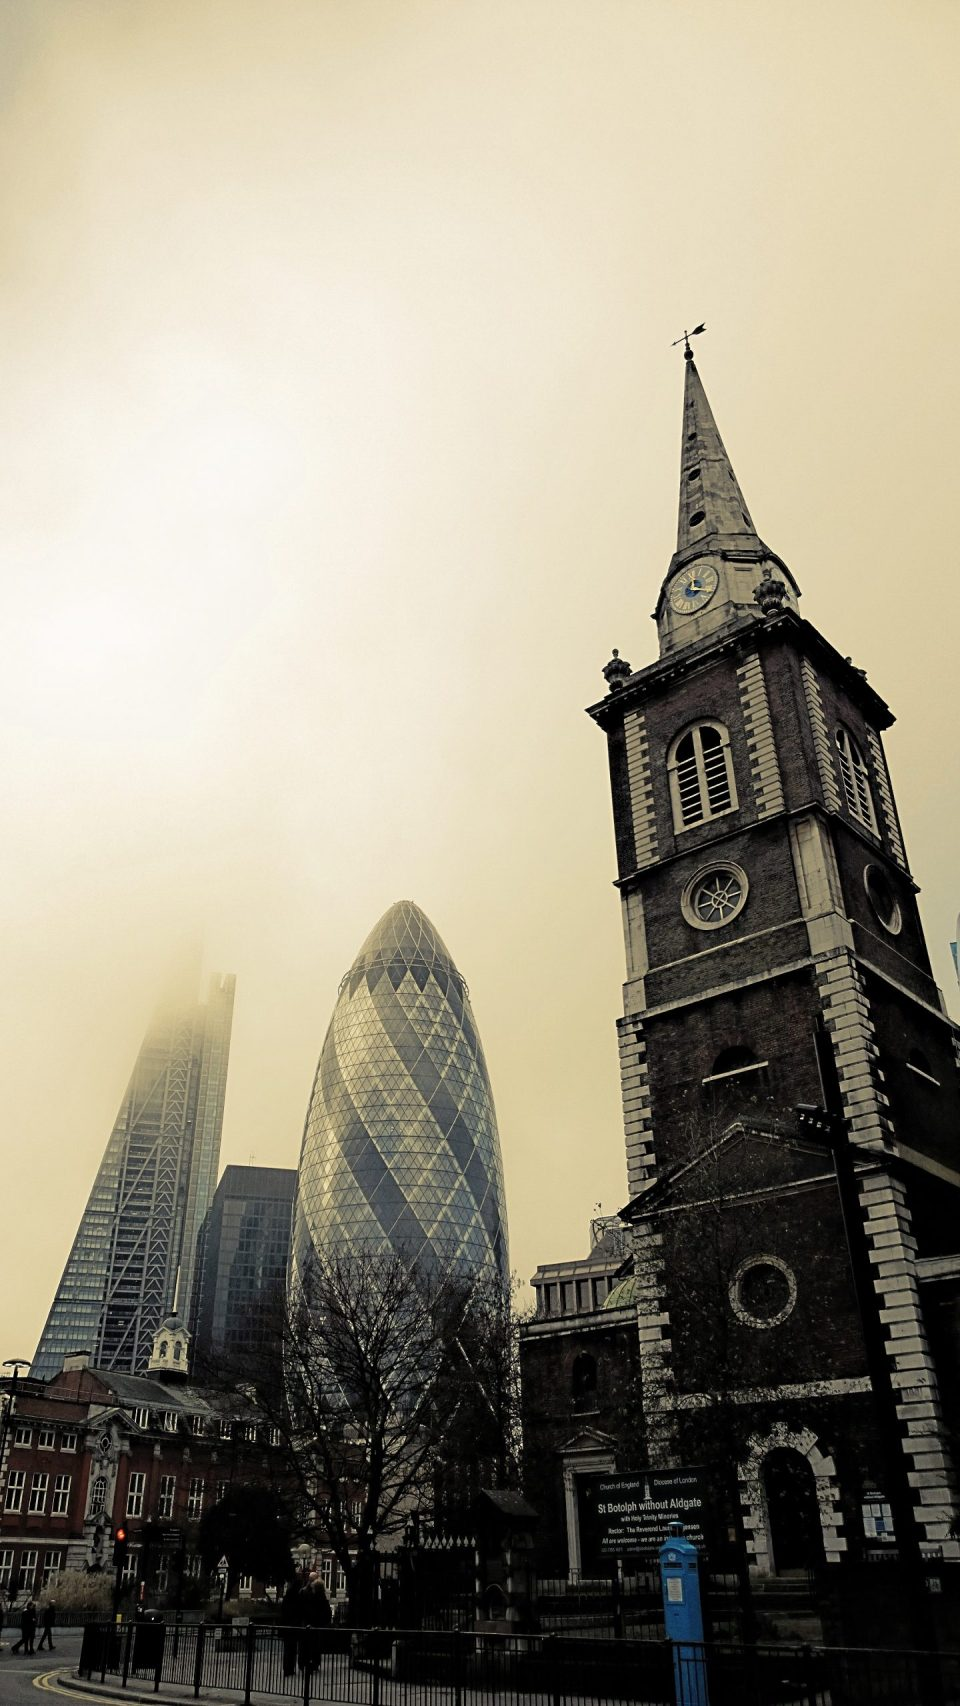 St. Botolph's Church in Aldgate with the Gherkin and the Cheesegrater in the background.  All I did here was add a filter on a foggy day